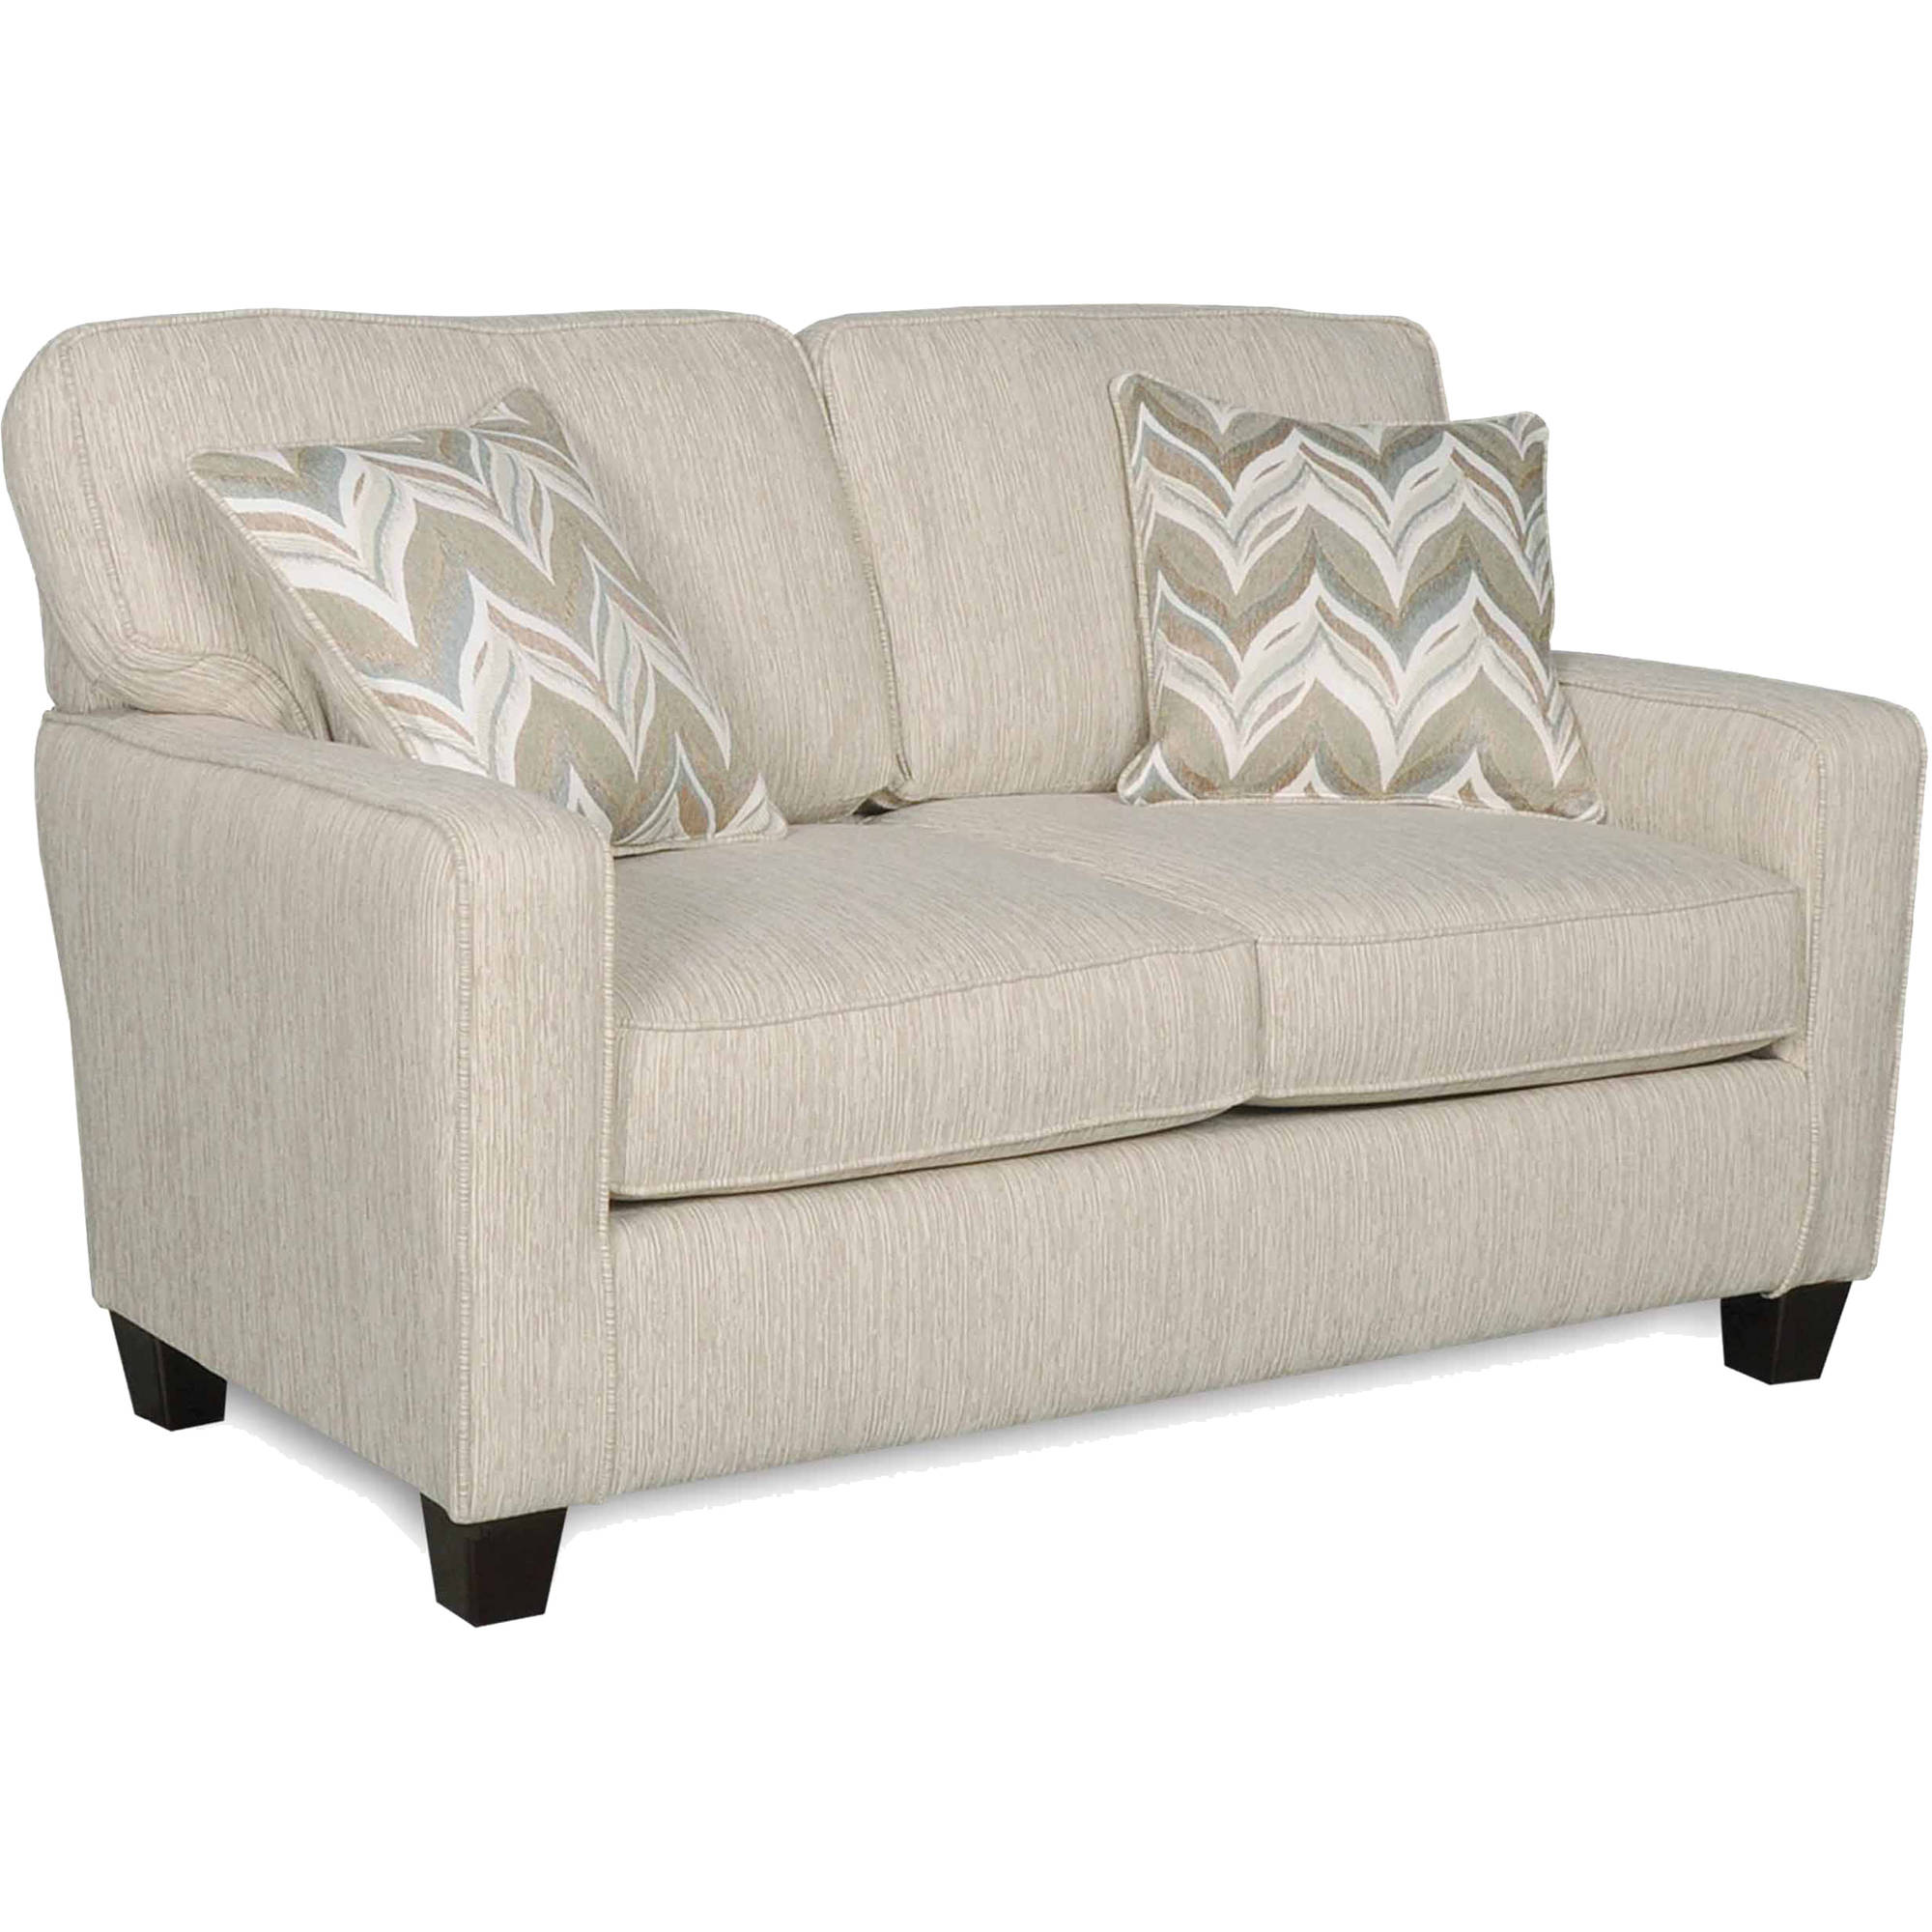 SoFab Austin Almond Loveseat with 2 Accent Pillows